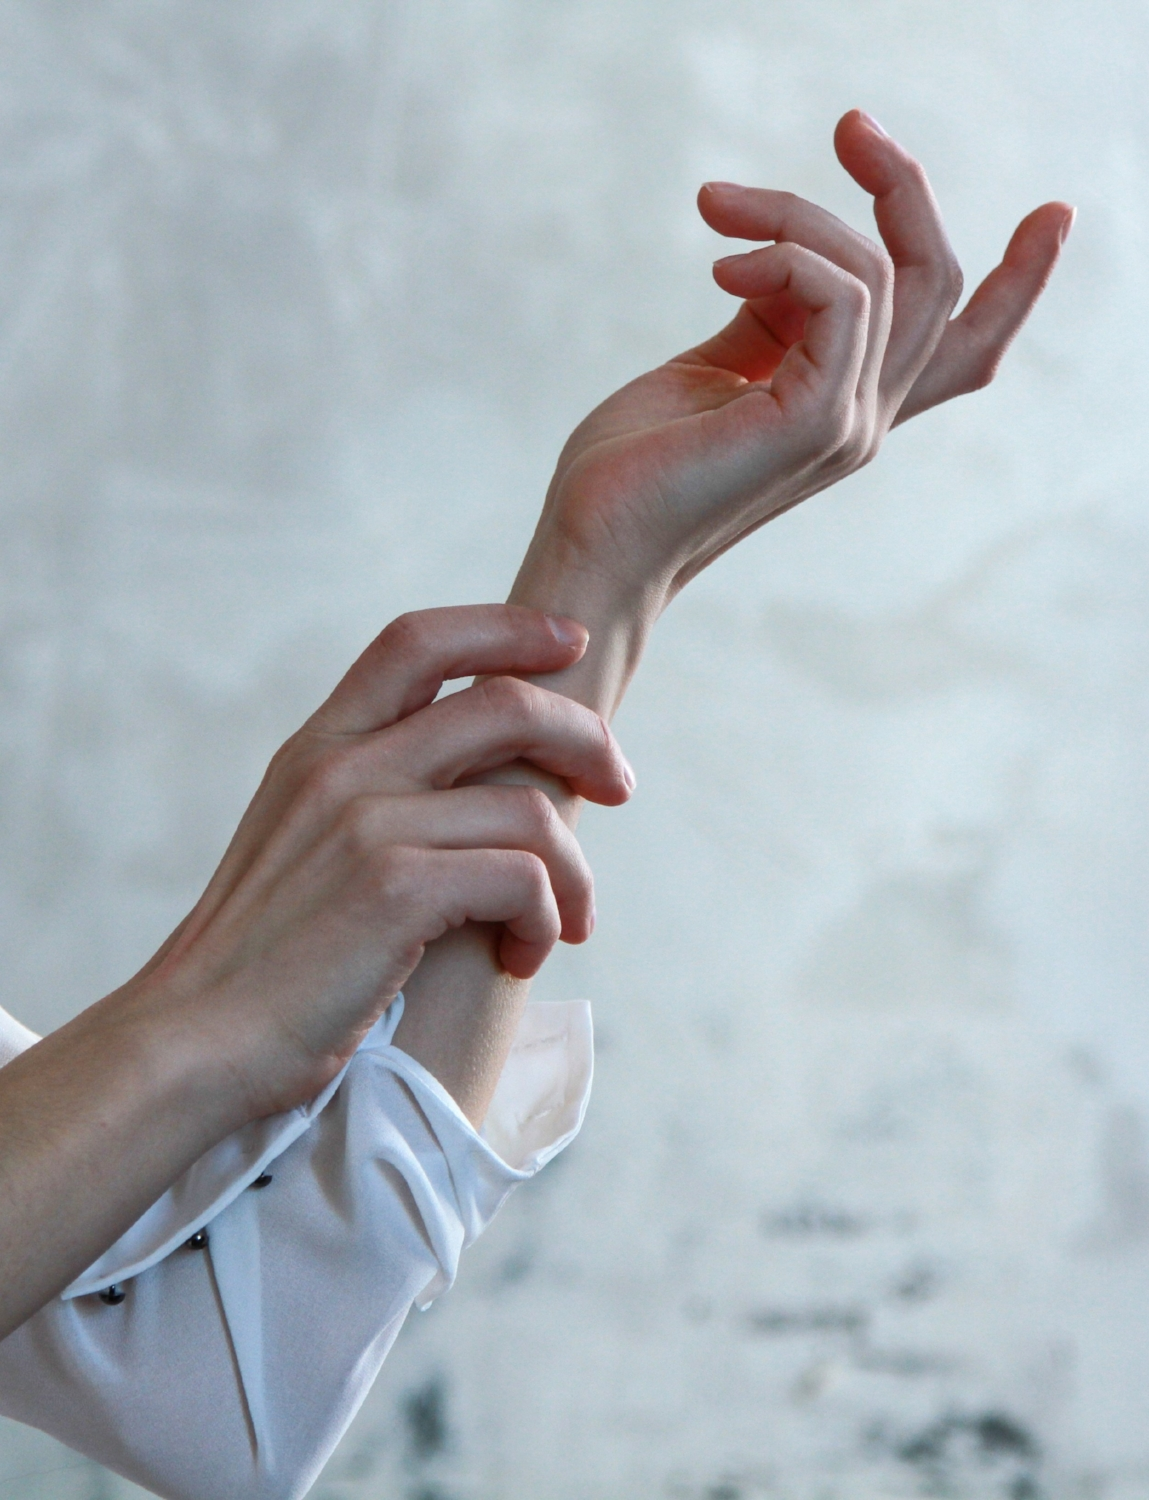 We've talked about touching other people but what about self-touch? We release oxytocin within our body when we touch ourselves. That's why self-touching increases during times of stress and discomfort. Our brain perceives a threat and our body responds with an attempt to bring feelings of comfort. Self-touch increases, usually seen as face-touching, arm rubbing, neck touching, thigh rubbing, finger or nail biting–an almost endless list of self-soothing behaviours. Even movements with the tongue on the lips, or within the mouth, act to facilitate the release of oxytocin. The oxytocin brings comfort with its soothing, calming effect. This process occurs on a subconscious level, the majority of people aren't even aware of their self touch.